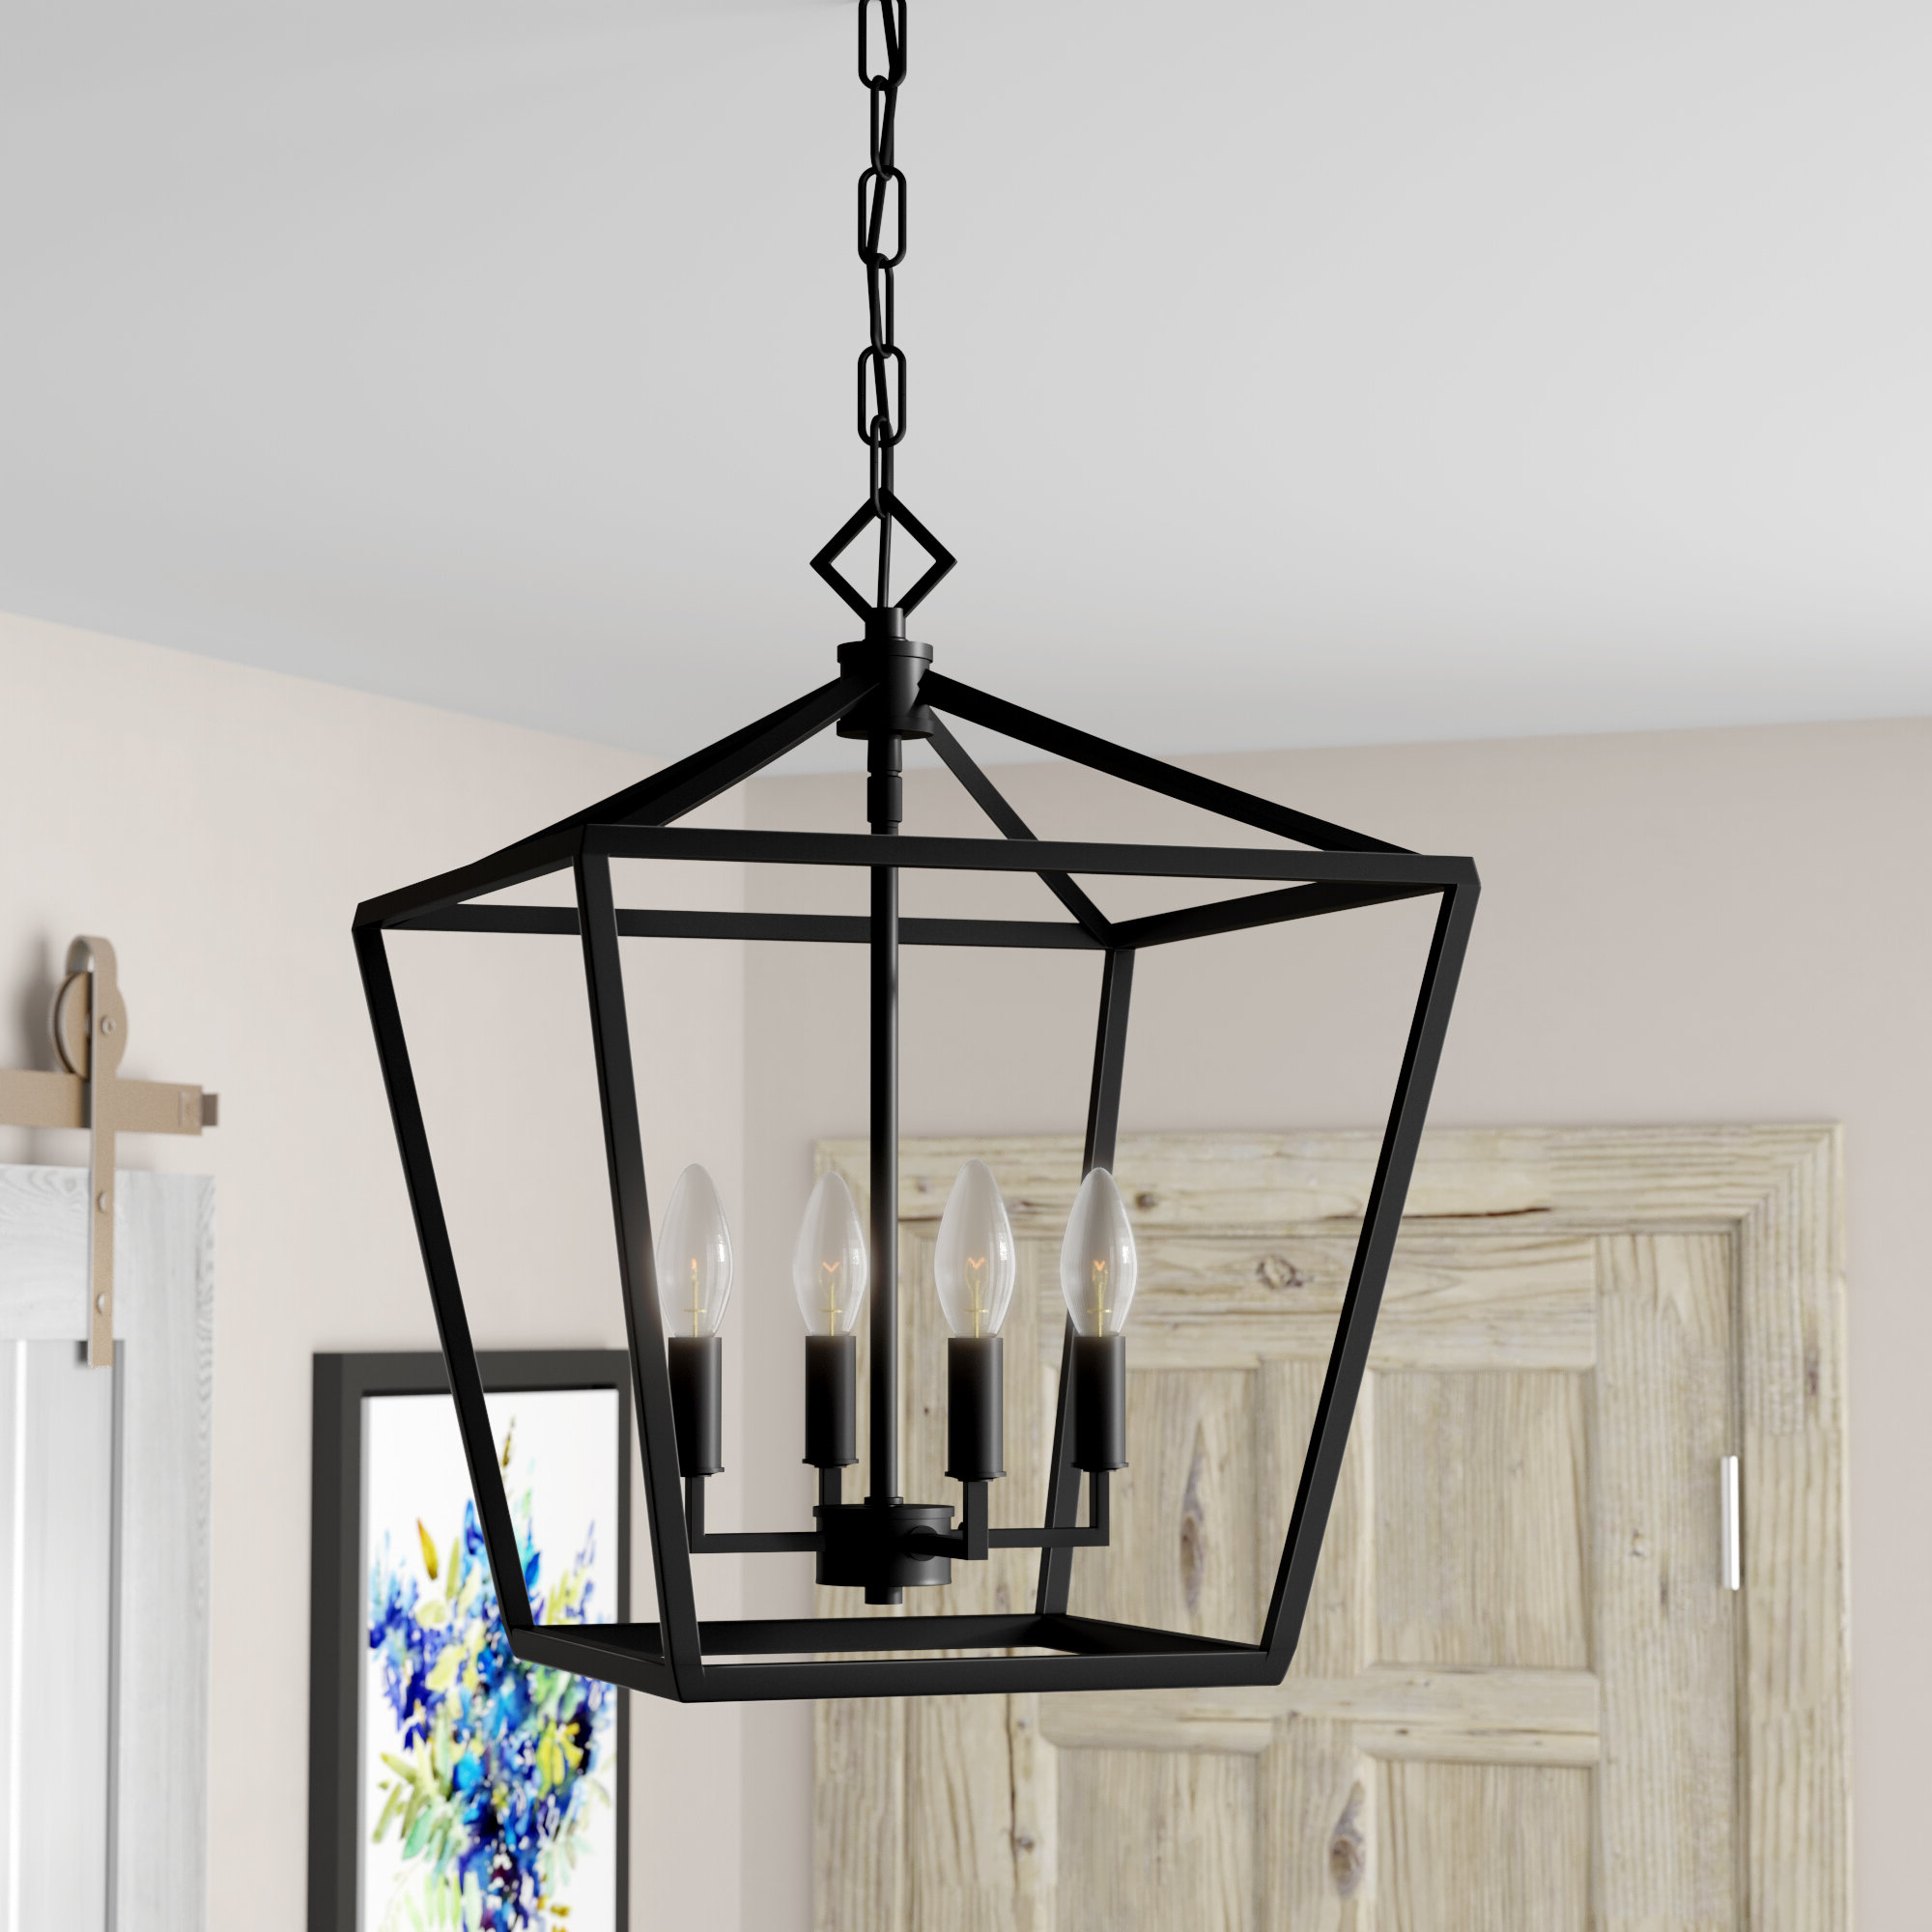 Varnum 4-Light Lantern Pendants for Famous Poisson 4-Light Lantern Pendant